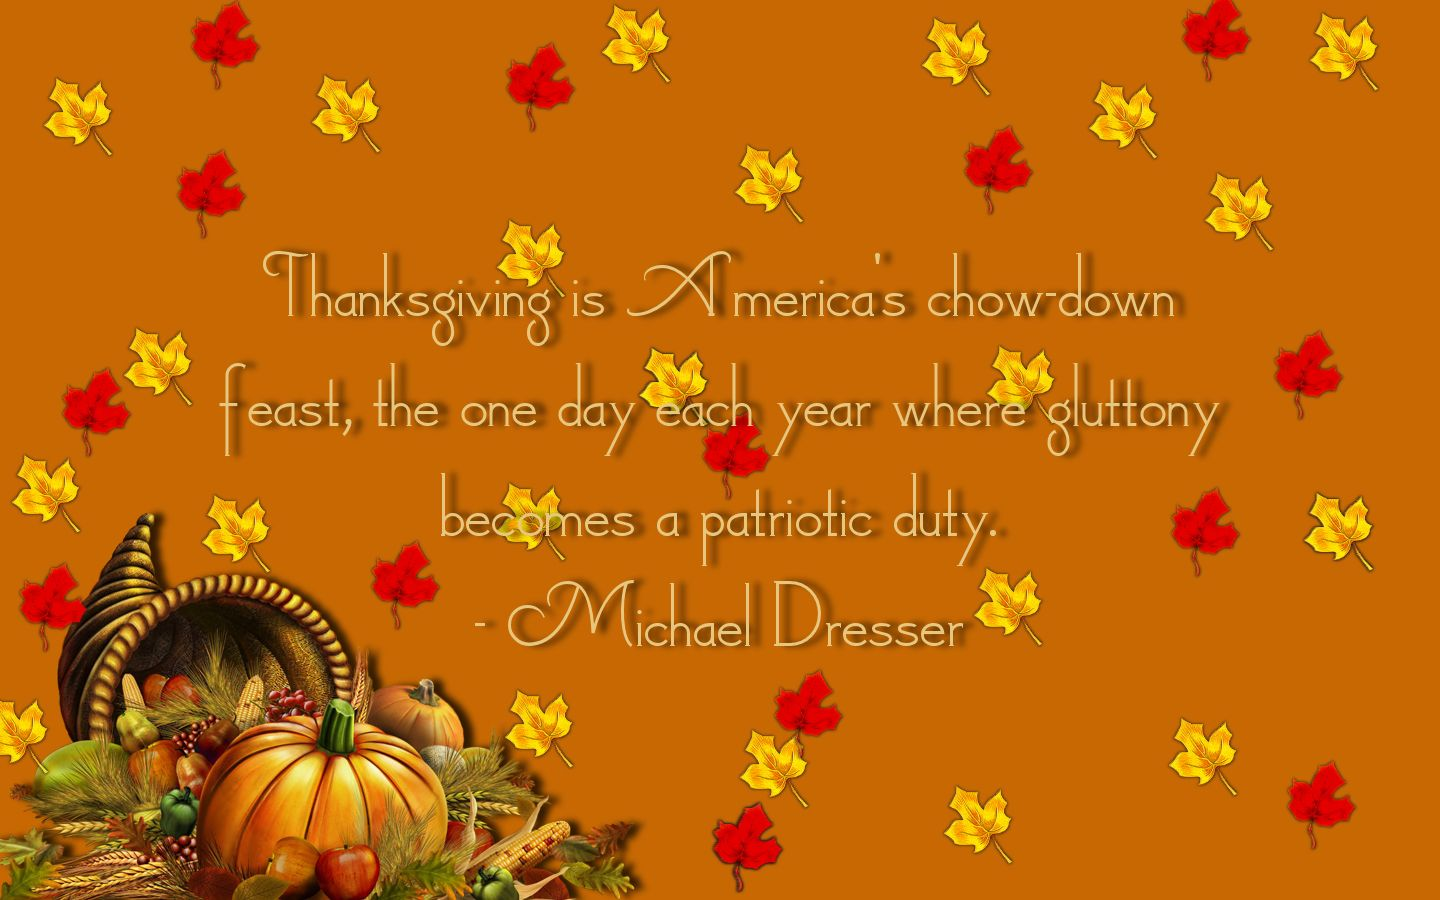 Thanksgiving Quotes Wallpapers Hd Free Thanksgiving Wallpaper Thanksgiving Wallpaper Thanksgiving Background